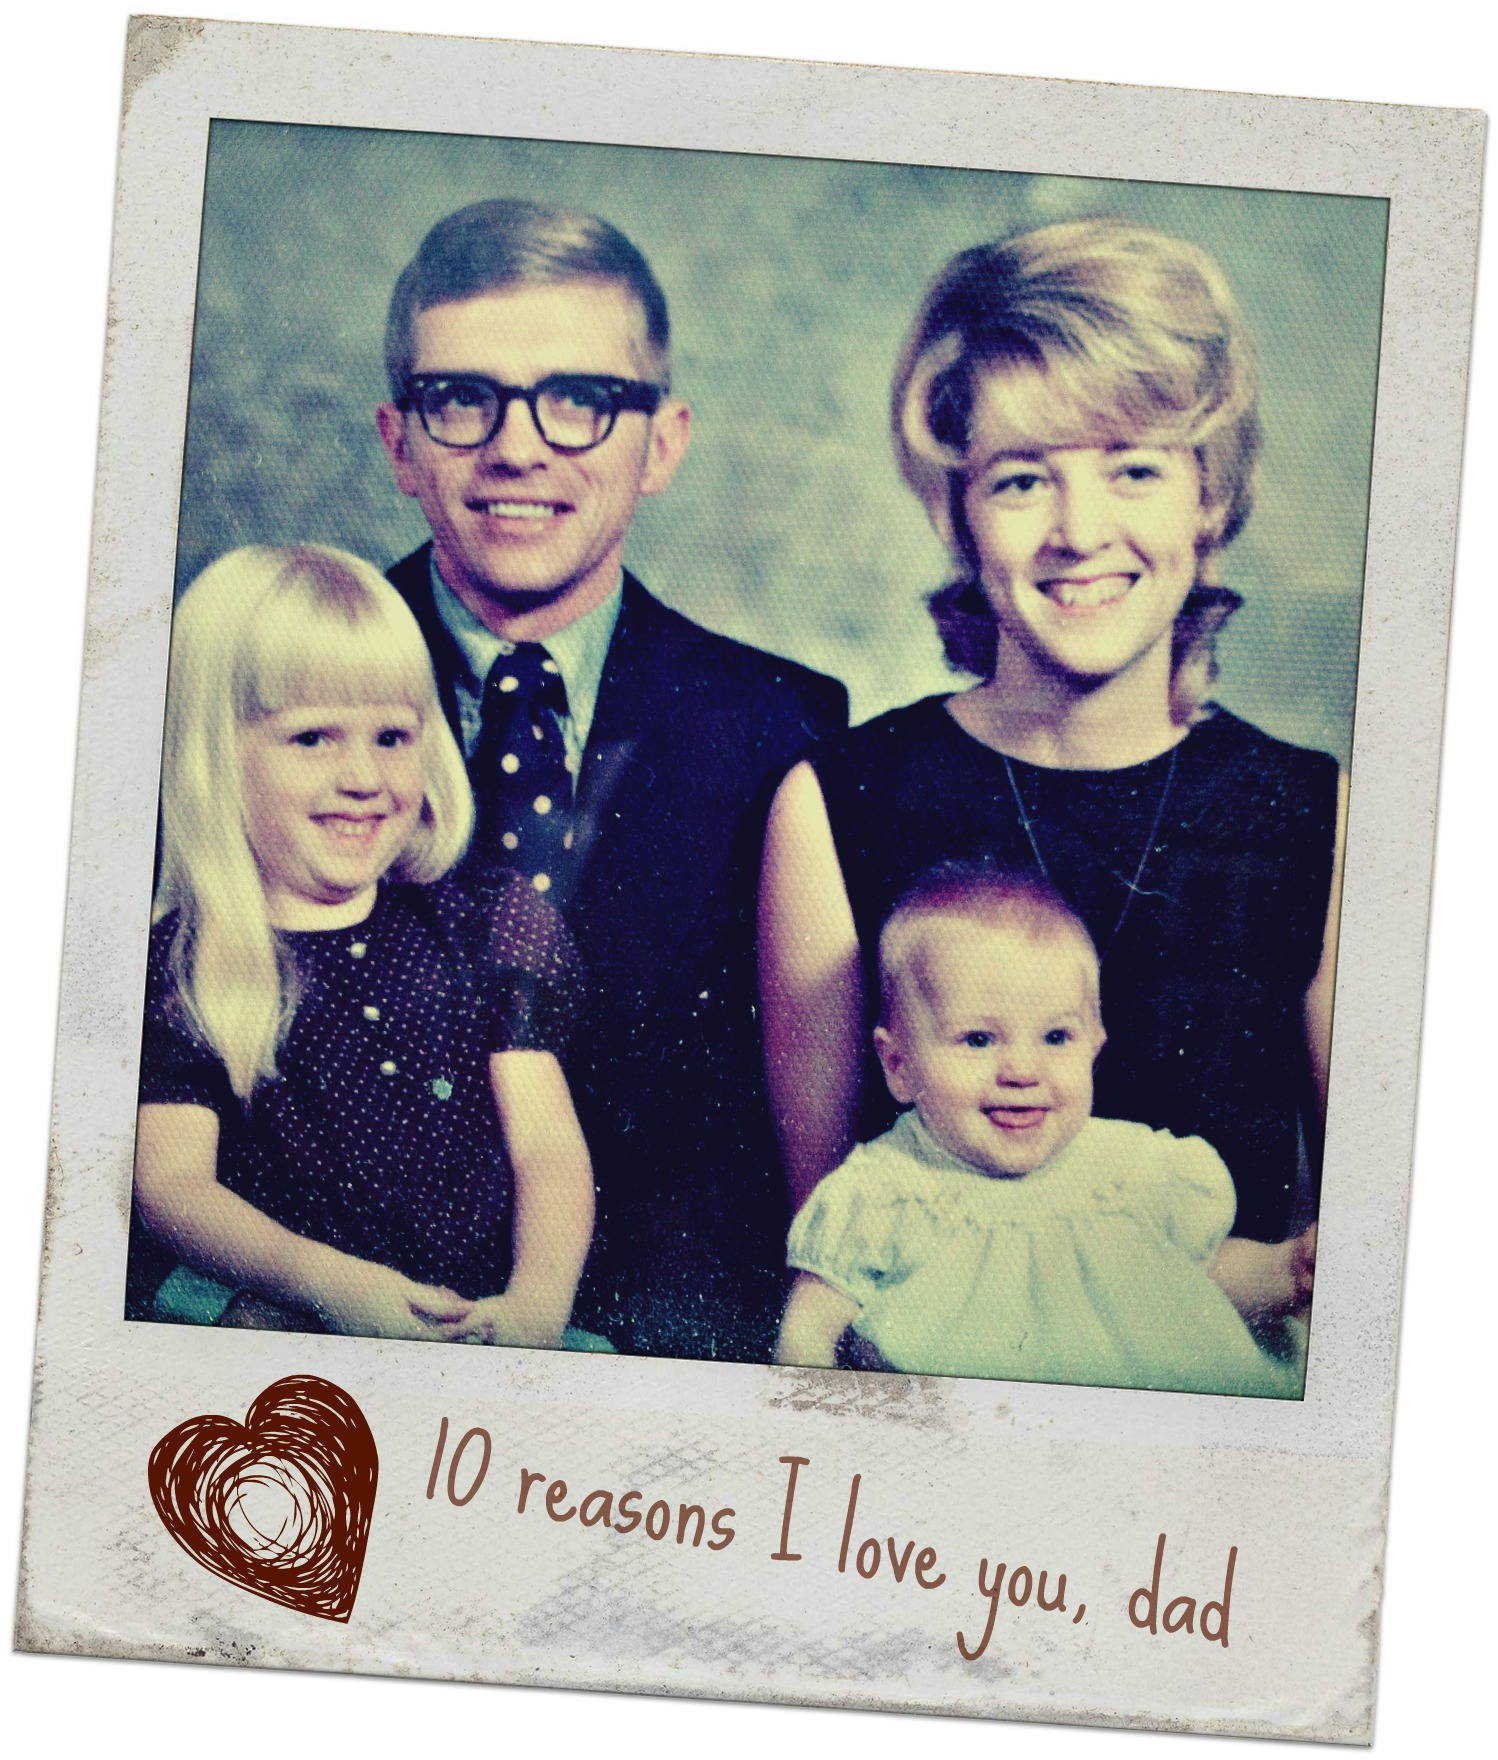 10 Reasons I Love You, Dad